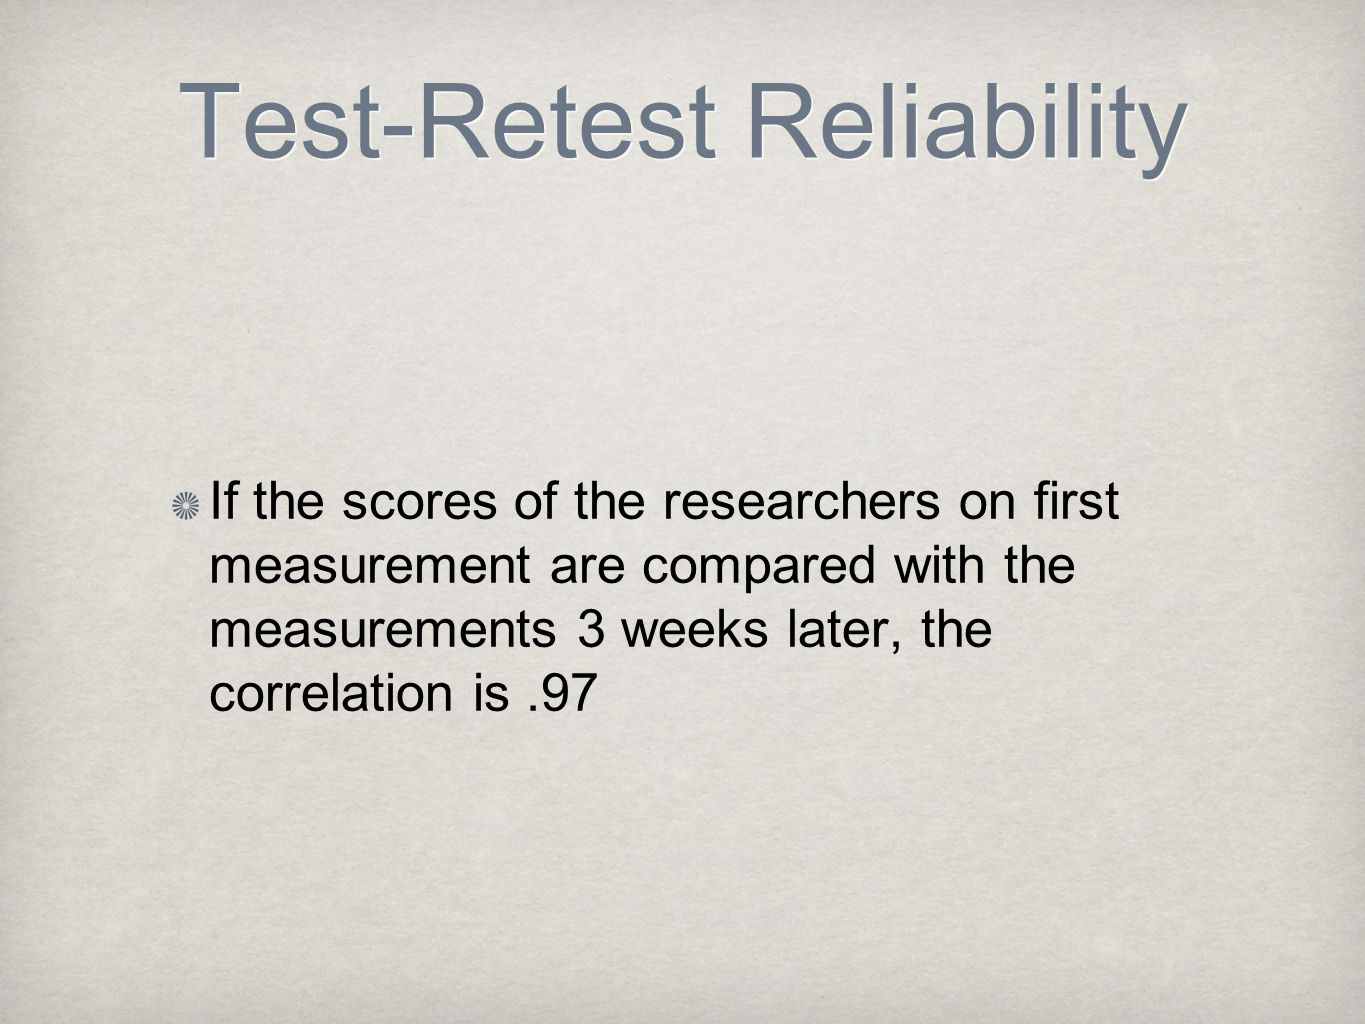 Test-Retest Reliability If the scores of the researchers on first measurement are compared with the measurements 3 weeks later, the correlation is.97